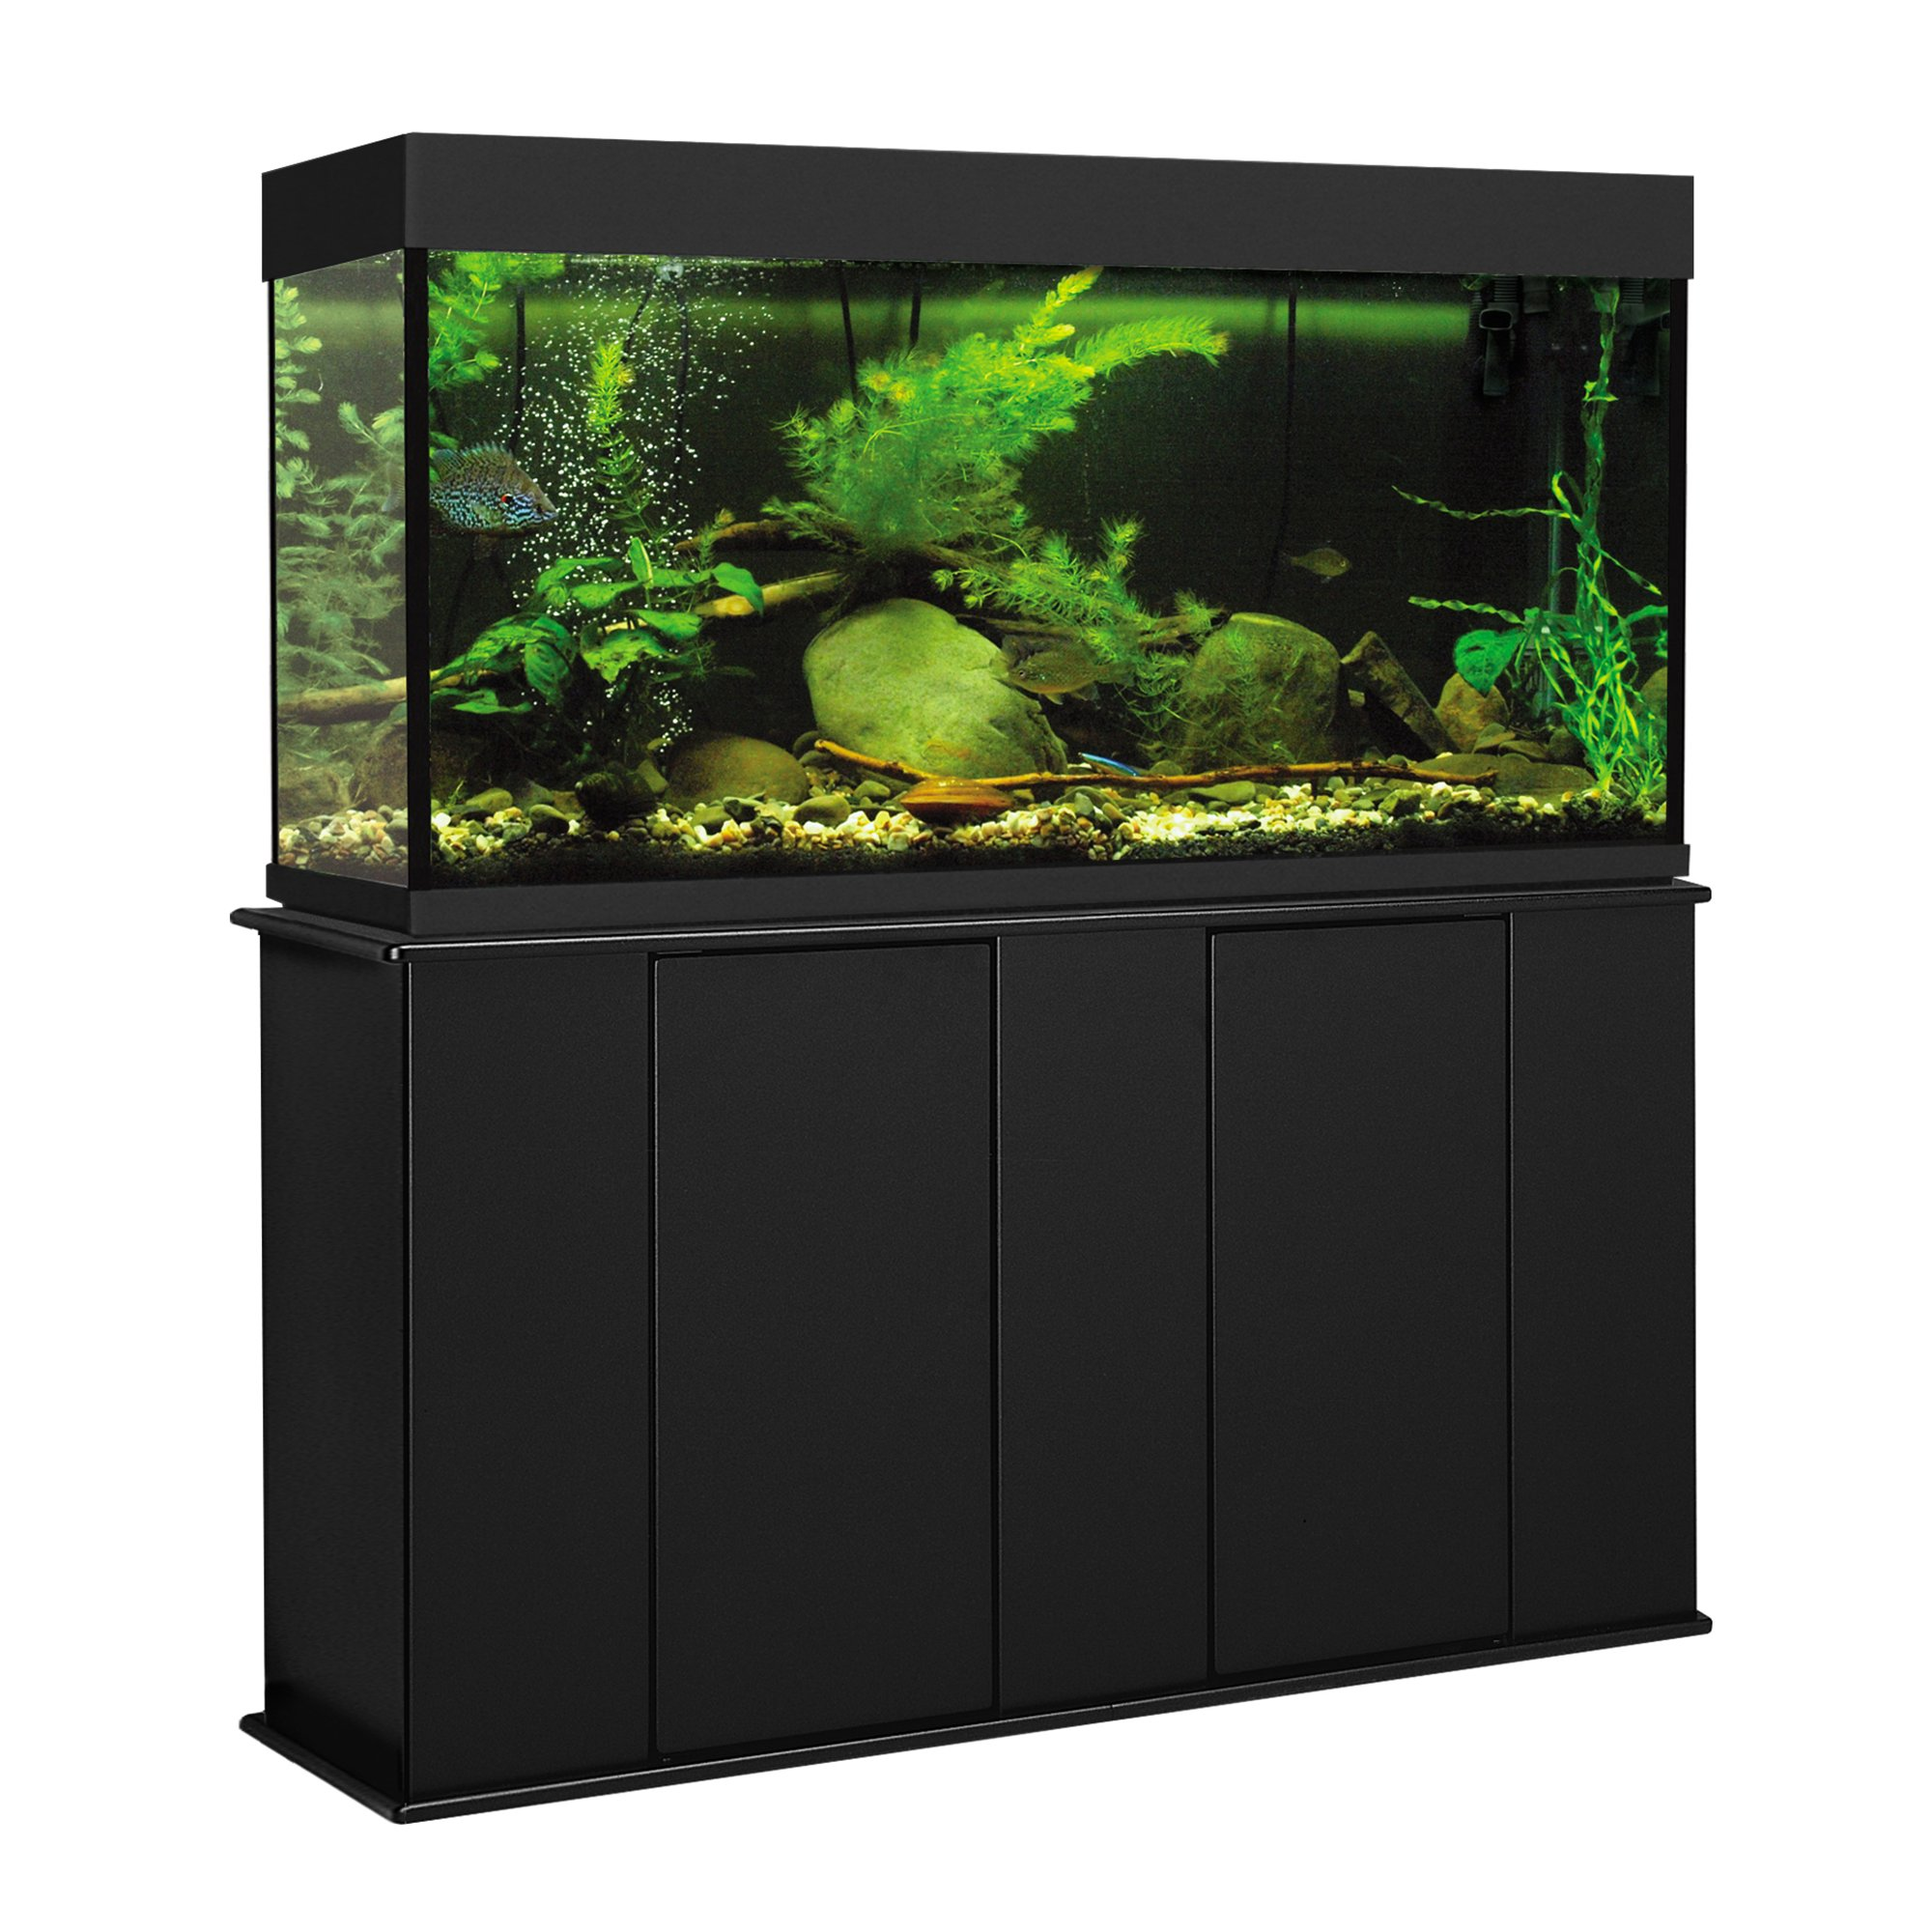 Aquatic fundamentals 55 gallon upright aquarium stand petco for 50 gallon fish tank dimensions